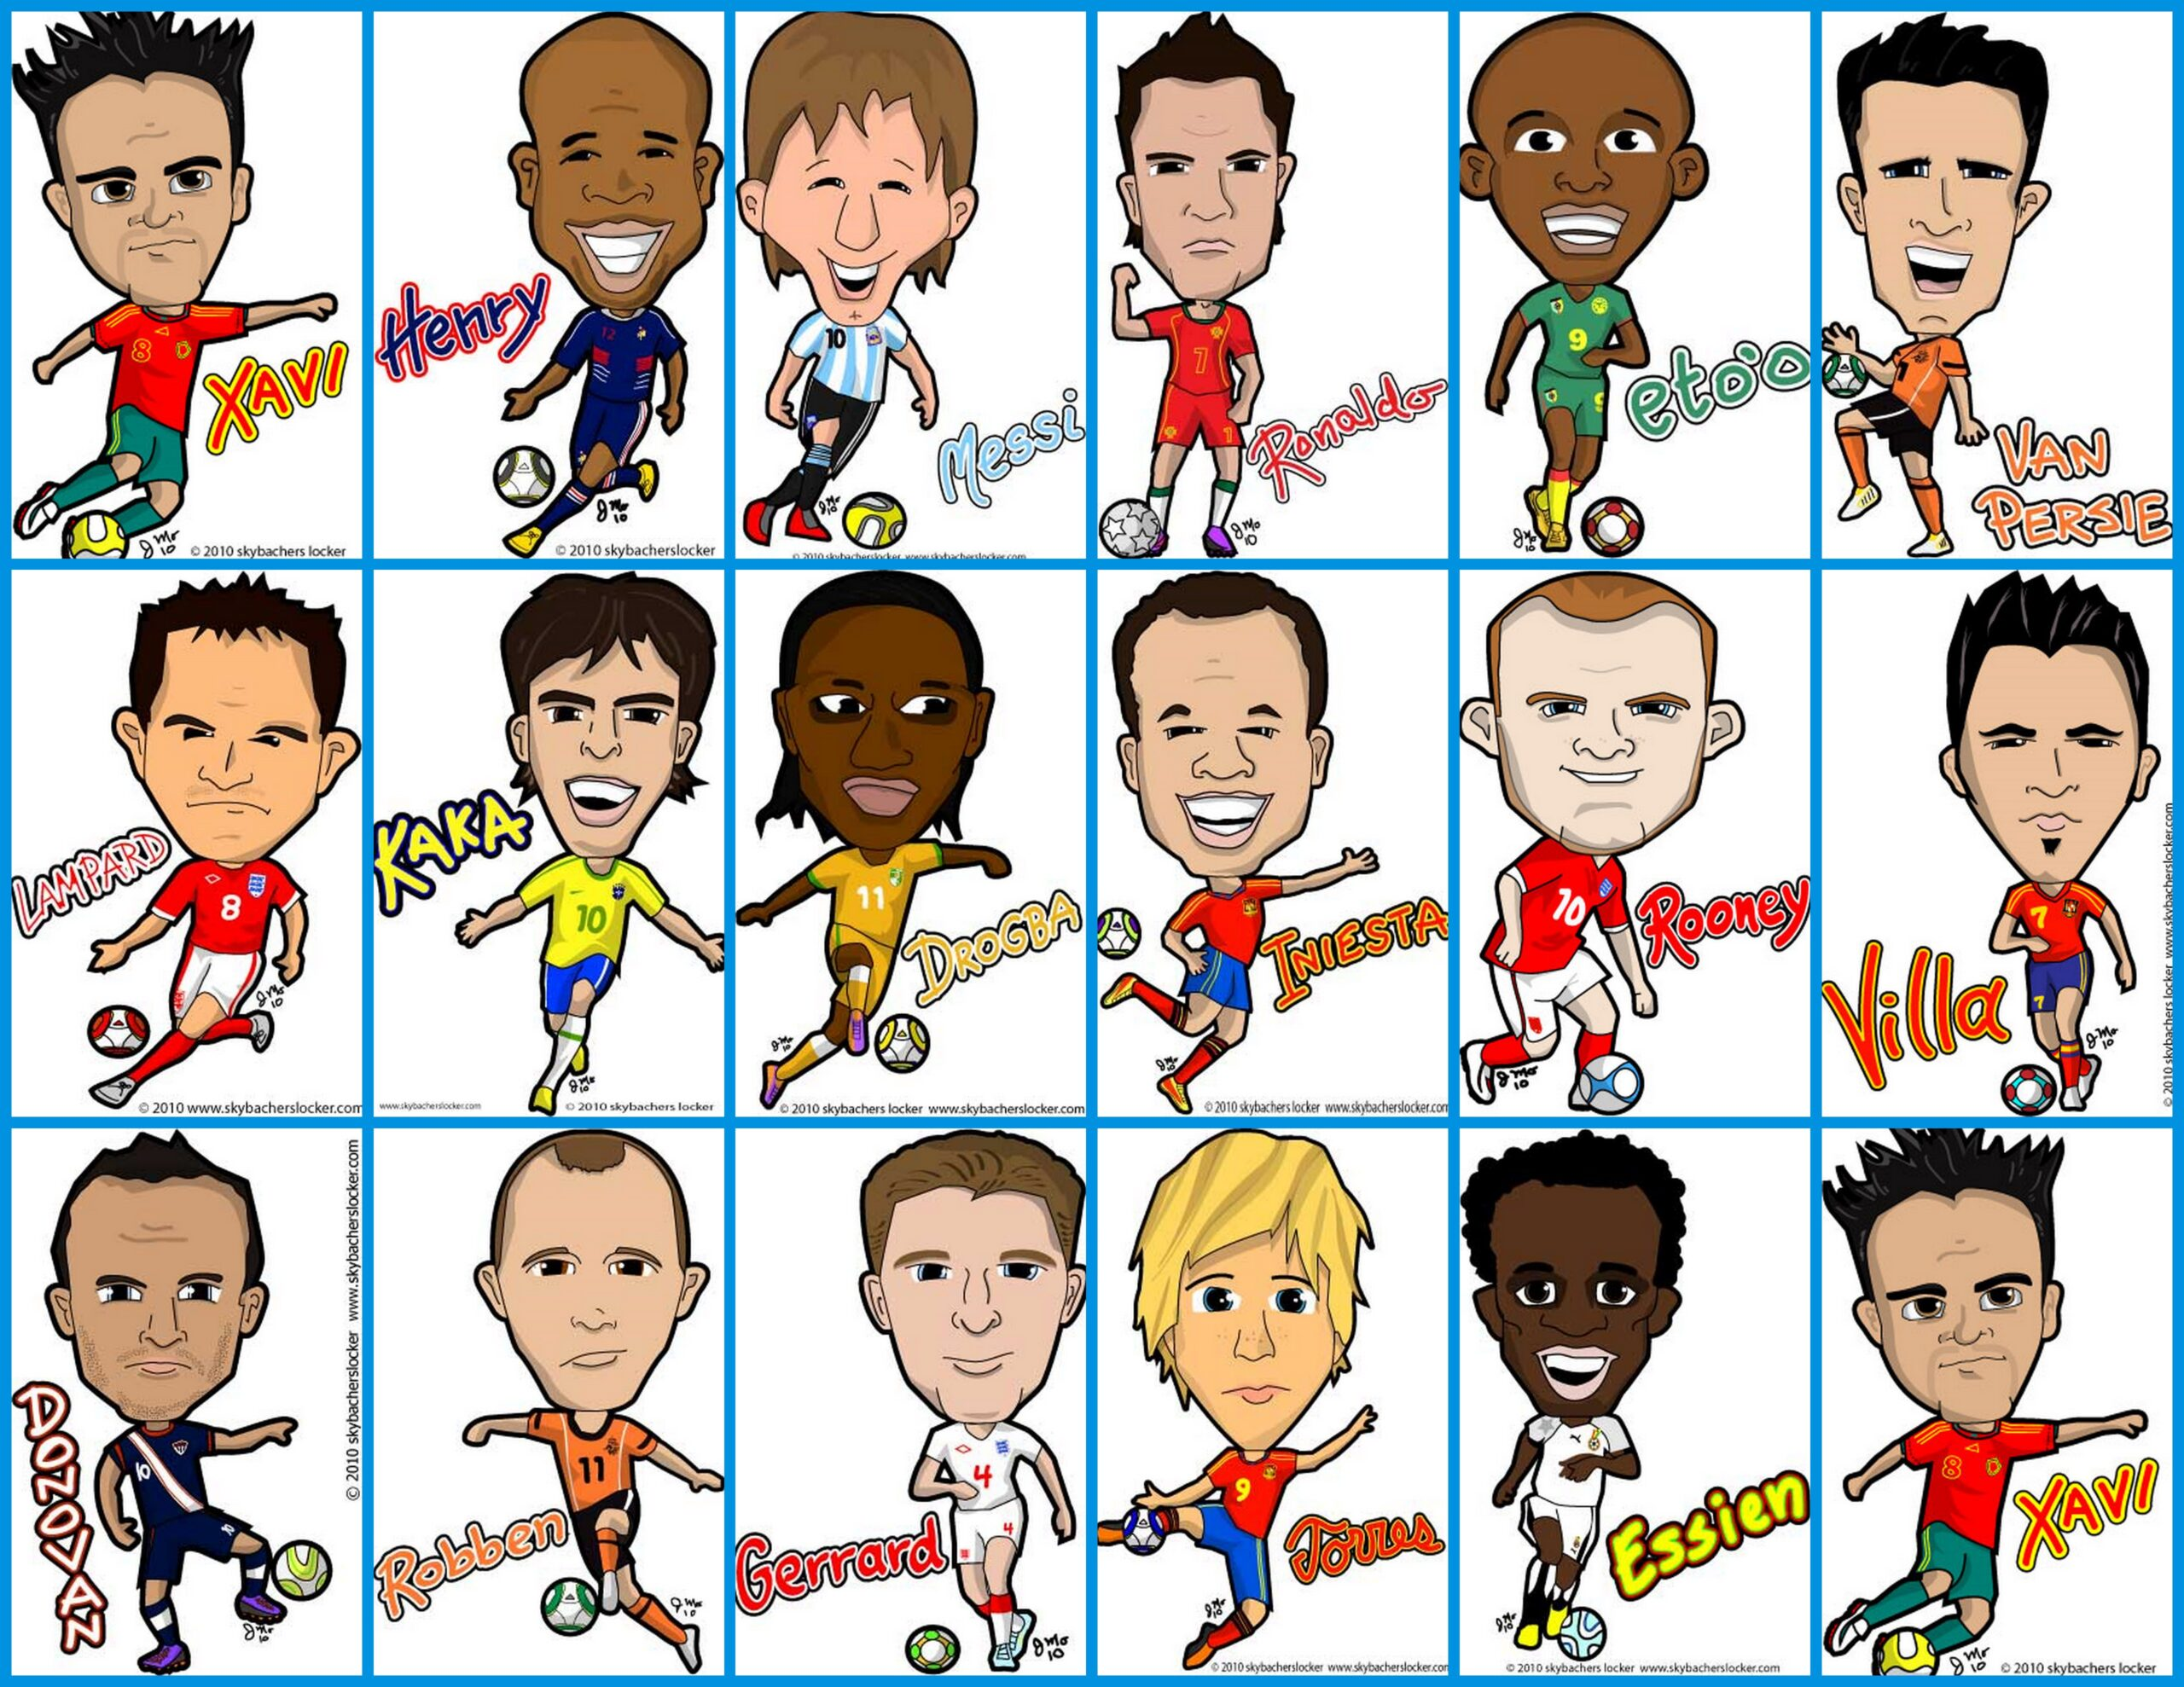 Premier League Cartoons on The Premier League